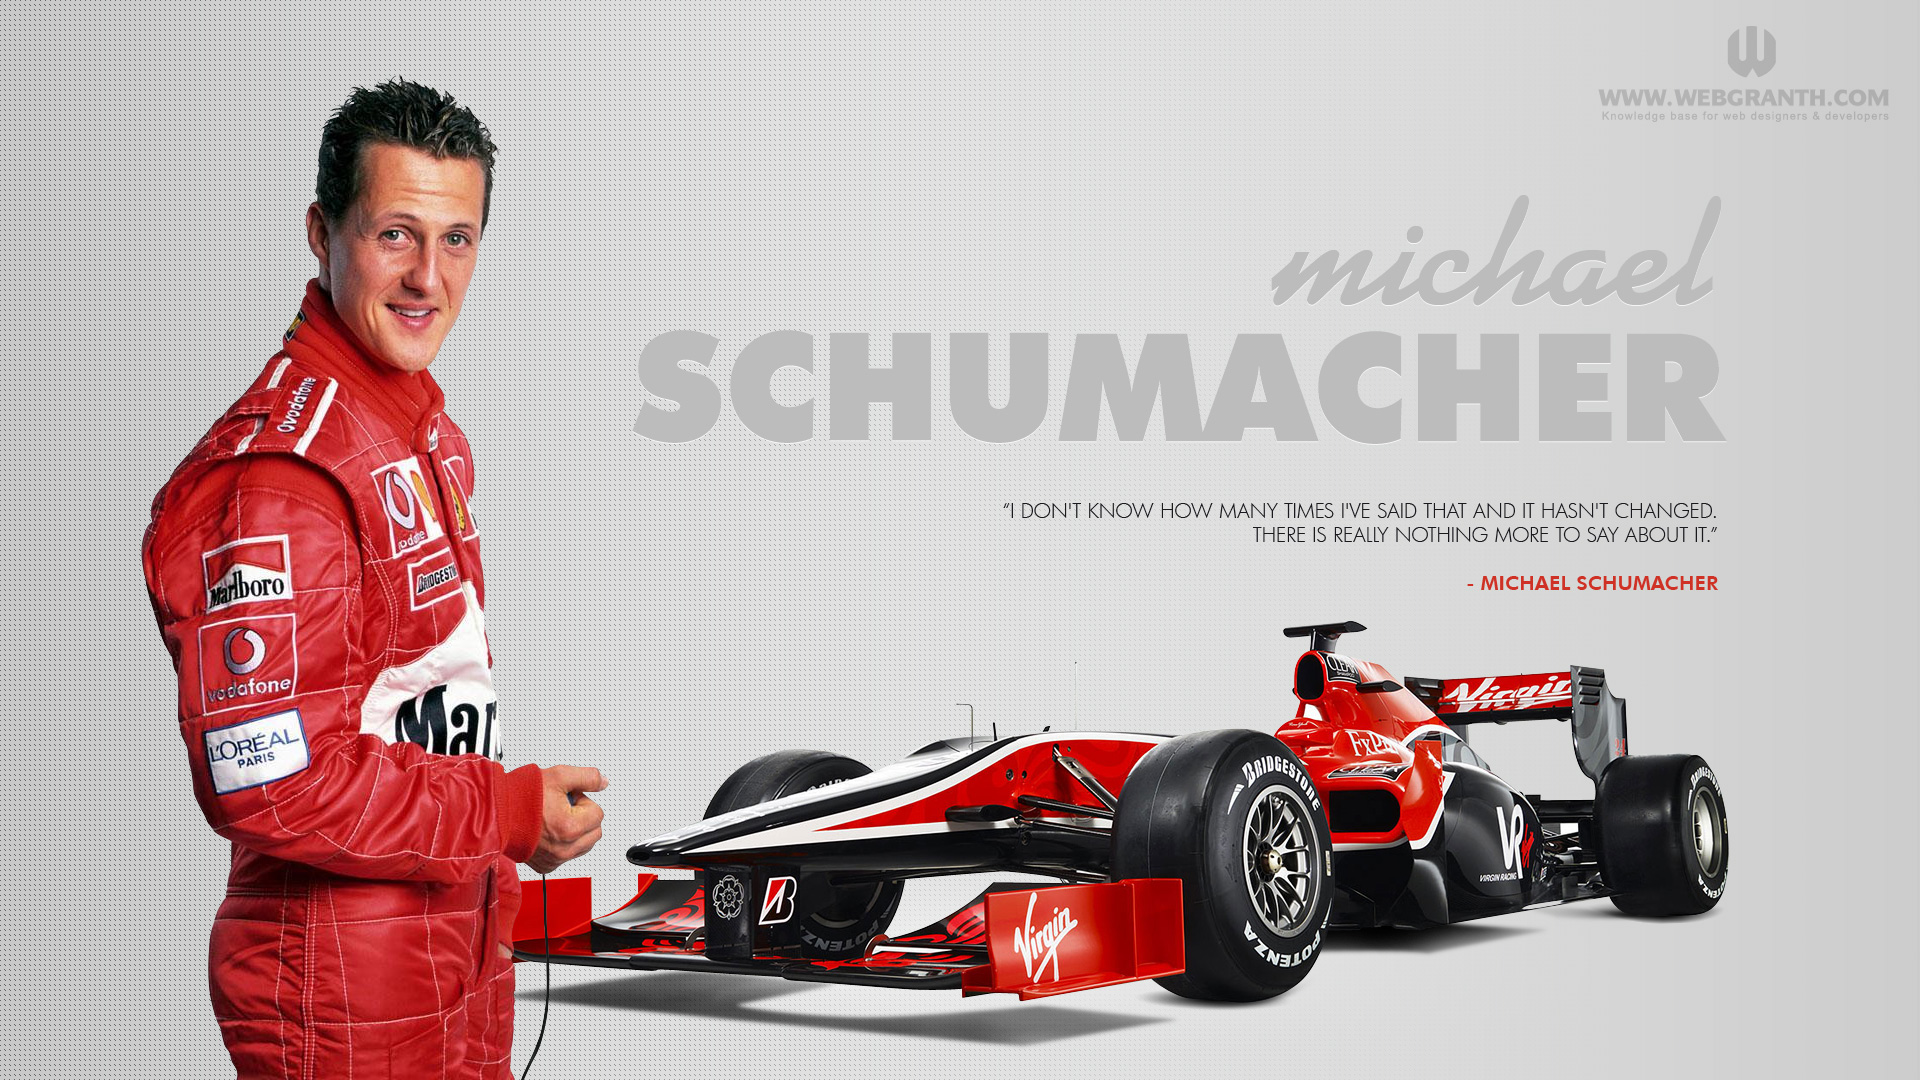 ... Michael Schumacher ...